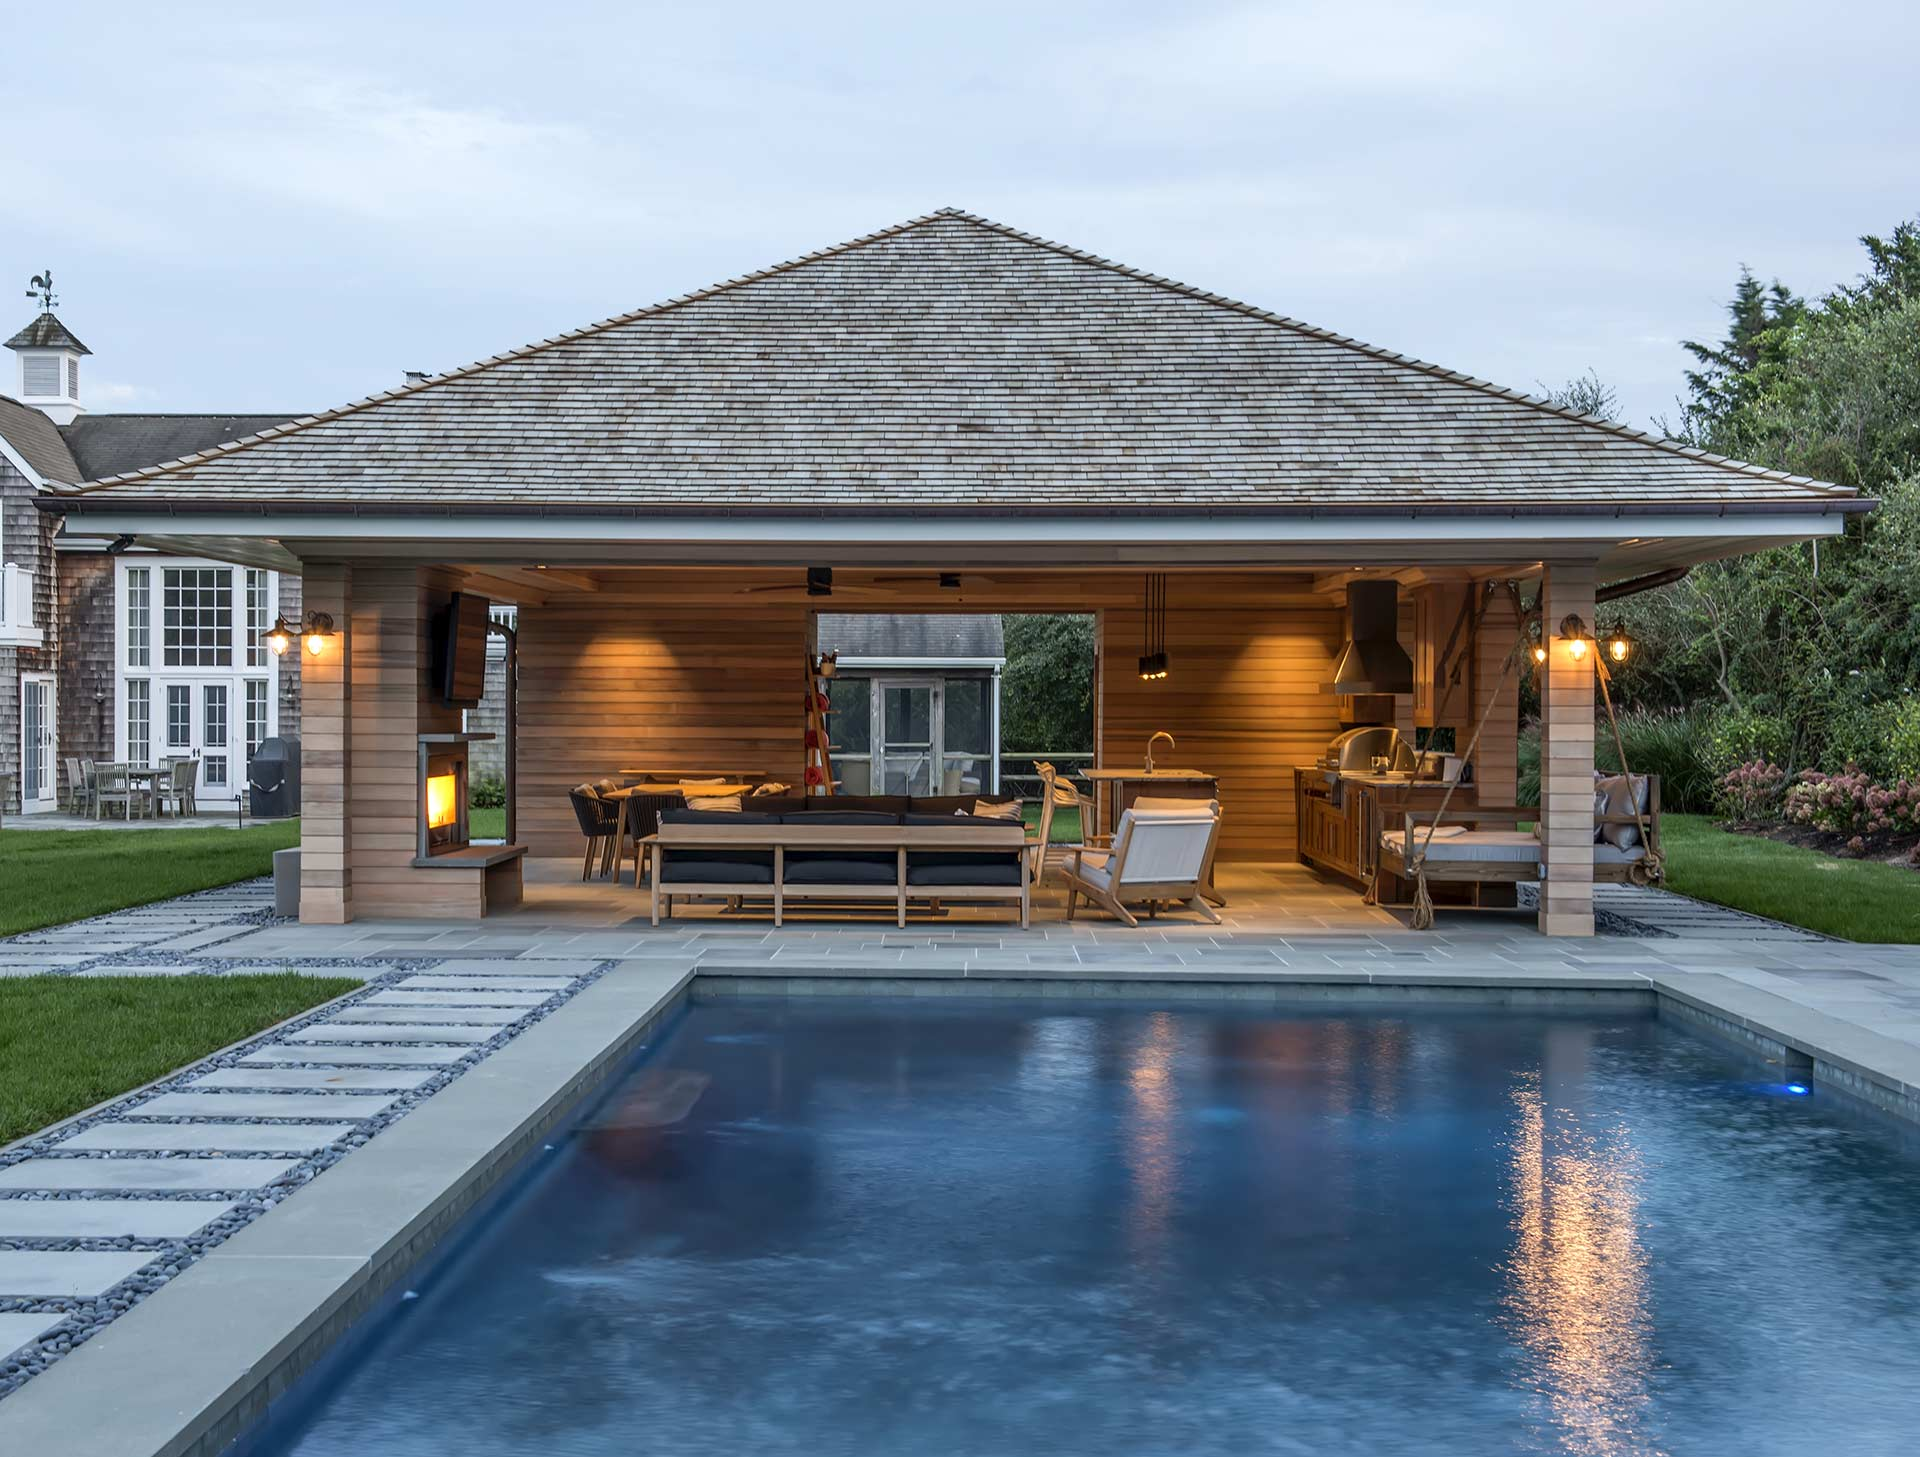 Pavilions - Imagine if you remove the walls from your house…that's a pavilion! With an open floor plan seamlessly connecting kitchen, dining, and living spaces, pavilions provide the creature comforts and innovations you've typically only seen in the main house.